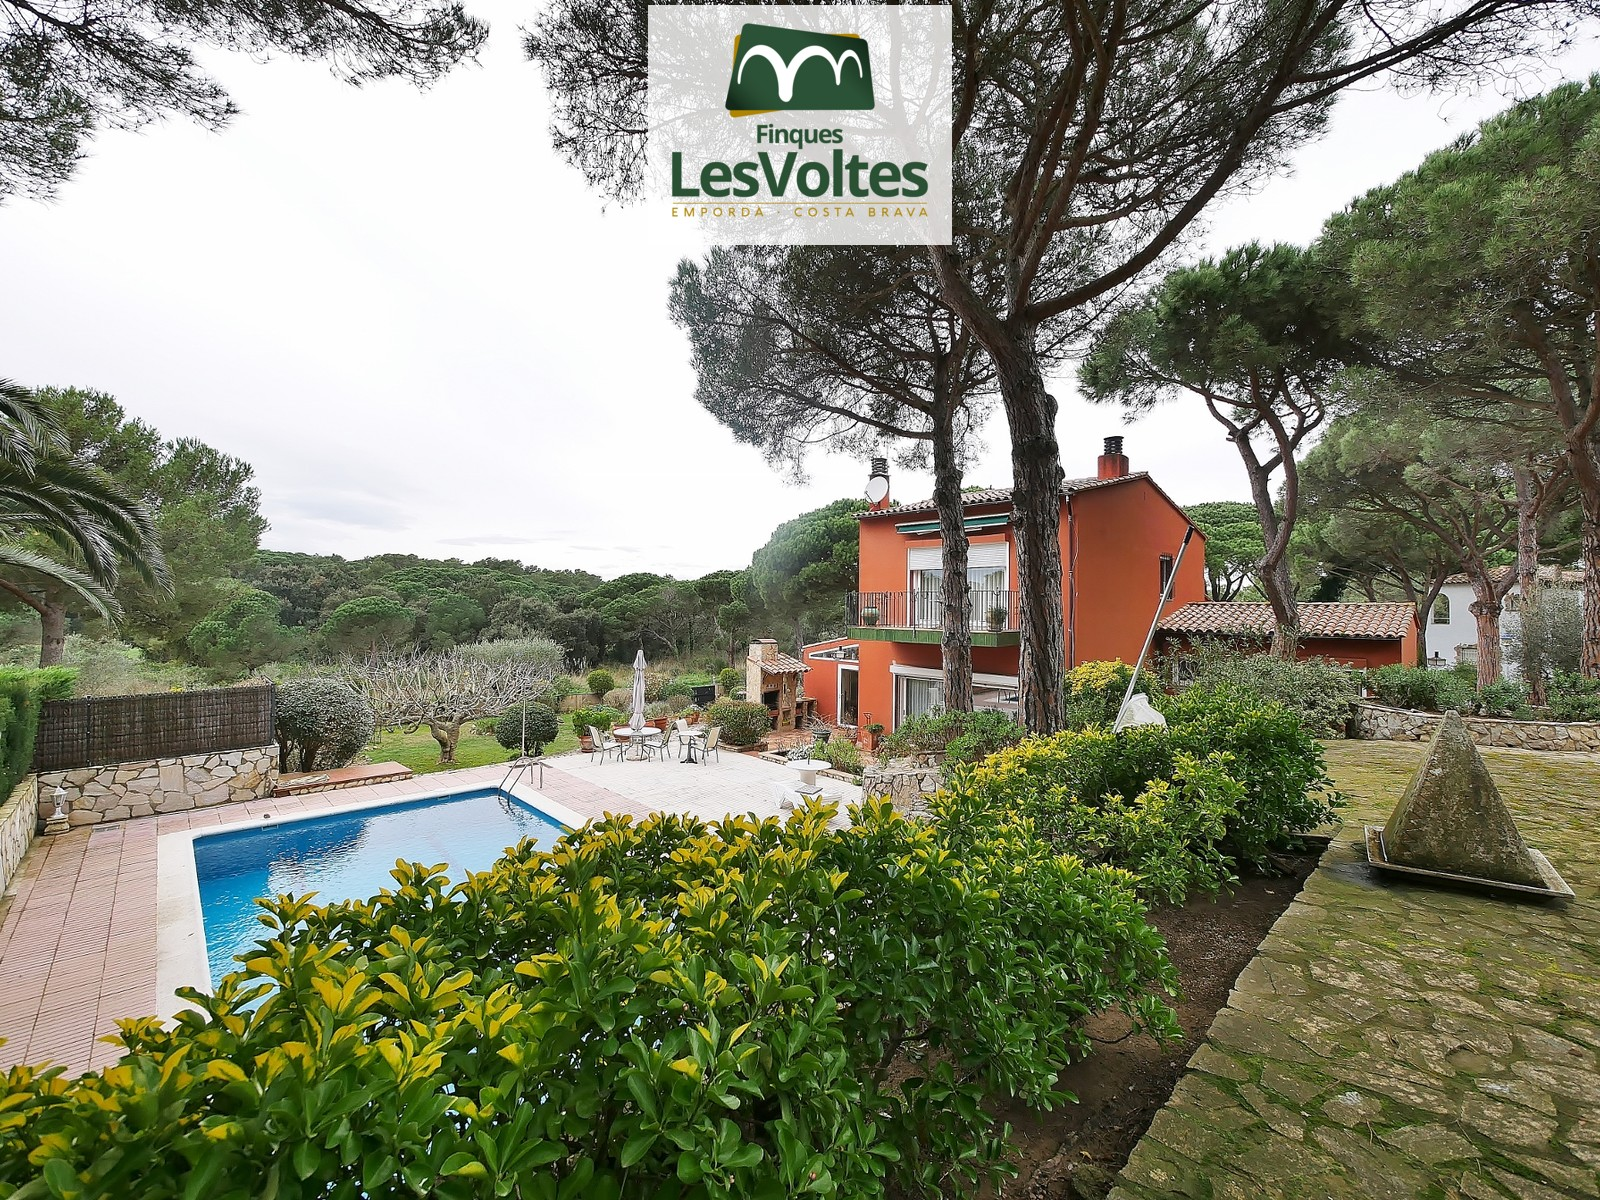 SINGLE FAMILY HOUSE WITH LARGE GARDEN AND SWIMMING POOL IN THE GOLFET AREA OF CALELLA DE PALAFRUGELL. BUILDING FARM WITH MANY